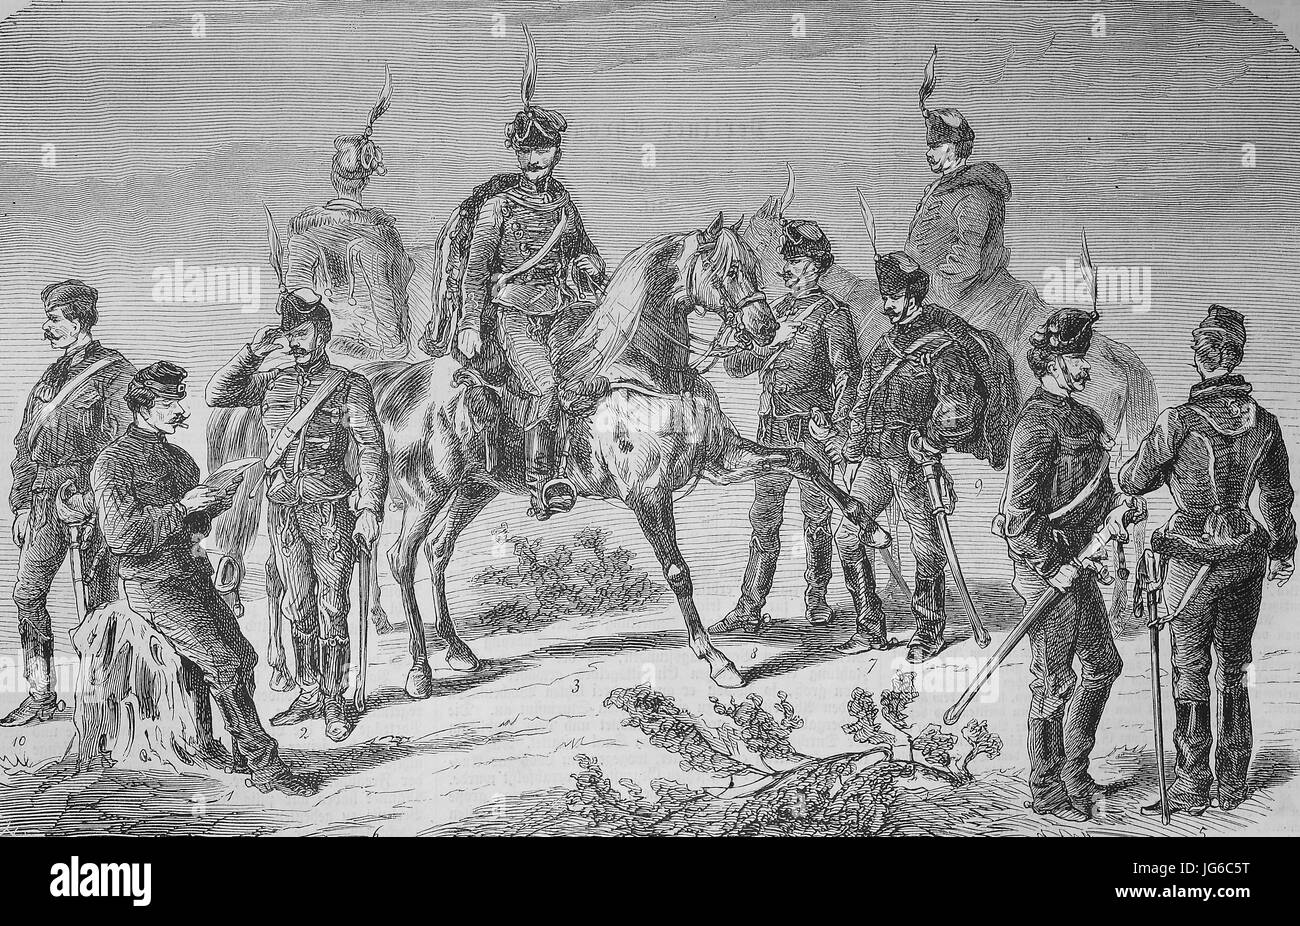 Digital improved:, Hussar, Hussars from Austria and Hungary, soldiers, cavalry, illustration from the 19th century Stock Photo